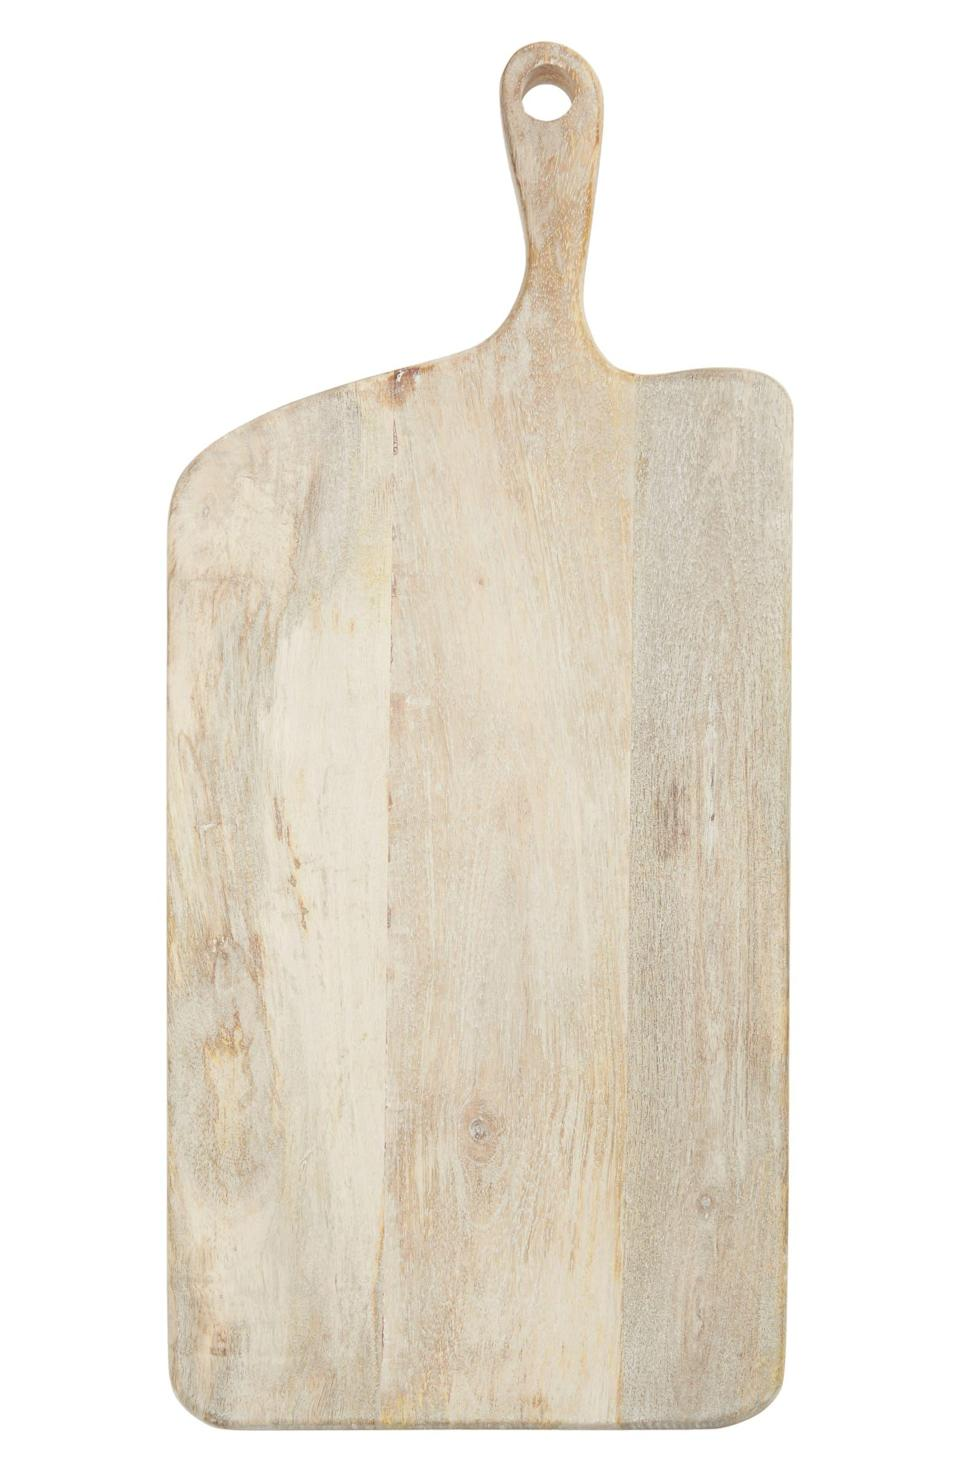 """<h2>Treasure & Bond Large Mango Wood Cheese Board 37% Off</h2><br><strong><em>Next Best Deal:</em></strong><em> Since Treasure & Bond Large Mango Wood Cheese Board is sold out, try this still-in-stock <a href=""""https://www.nordstrom.com/s/treasure-bond-extra-large-wood-cheese-board/5050085"""" rel=""""nofollow noopener"""" target=""""_blank"""" data-ylk=""""slk:Treasure & Bond EXTRA Large Mango Wood Cheese Board"""" class=""""link rapid-noclick-resp"""">Treasure & Bond EXTRA Large Mango Wood Cheese Board </a>instead!</em><br><br><em>Shop <strong><a href=""""https://www.nordstrom.com/brands/nordstrom--540"""" rel=""""nofollow noopener"""" target=""""_blank"""" data-ylk=""""slk:Nordstrom"""" class=""""link rapid-noclick-resp"""">Nordstrom</a></strong></em><br><br><strong>Treasure & Bond</strong> Large Mango Wood Cheese Board, $, available at <a href=""""https://go.skimresources.com/?id=30283X879131&url=https%3A%2F%2Fwww.nordstrom.com%2Fs%2Ftreasure-bond-large-mango-wood-cheese-board%2F5050091"""" rel=""""nofollow noopener"""" target=""""_blank"""" data-ylk=""""slk:Nordstrom"""" class=""""link rapid-noclick-resp"""">Nordstrom</a>"""